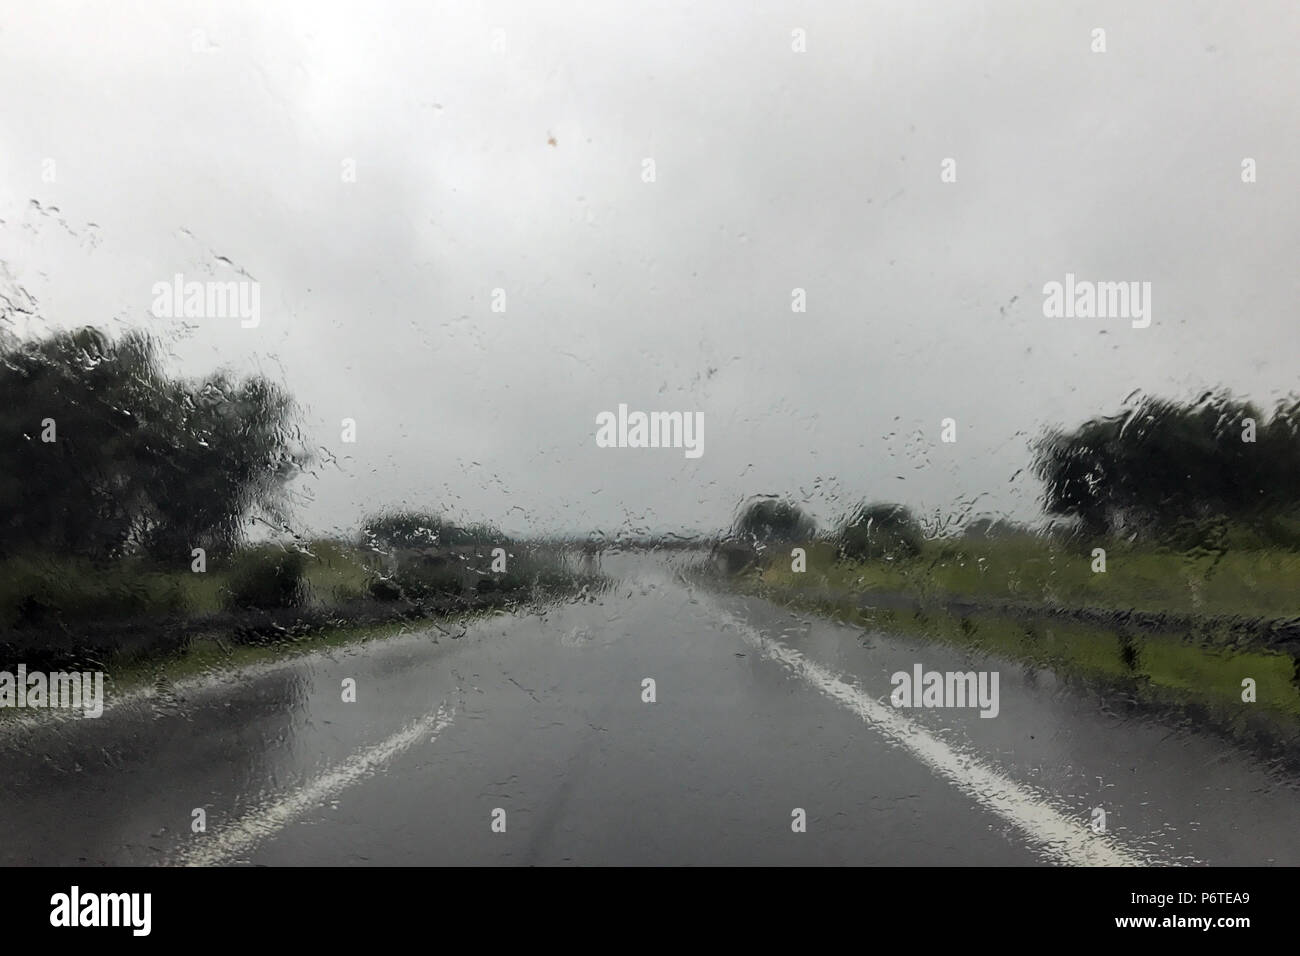 Berlin, Germany, poor visibility during heavy rain on a country road - Stock Image